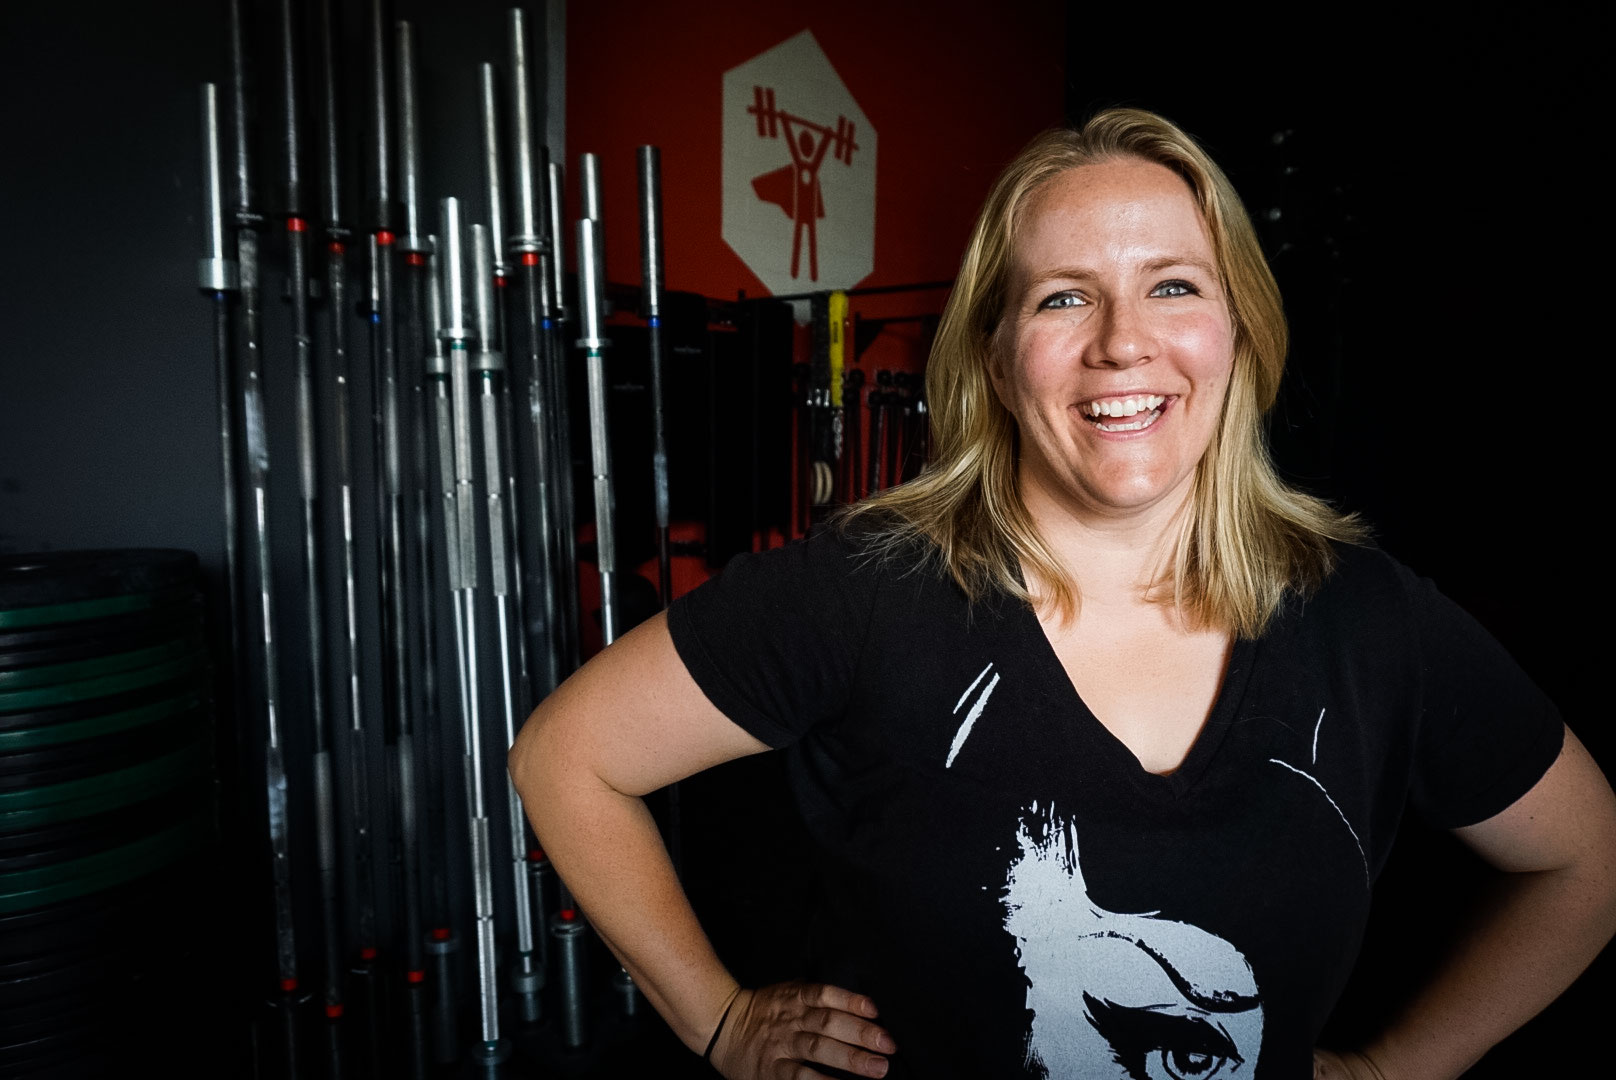 ANNE WESTCOTT   GYM MASTER   NERDSTRONG Gym Master Certified  Crossfit Level 1 Trainer  ONNIT Academy Foundations Trainer  Onnit Academy Kettlebell Specialist  Certified Savage Mace Flow